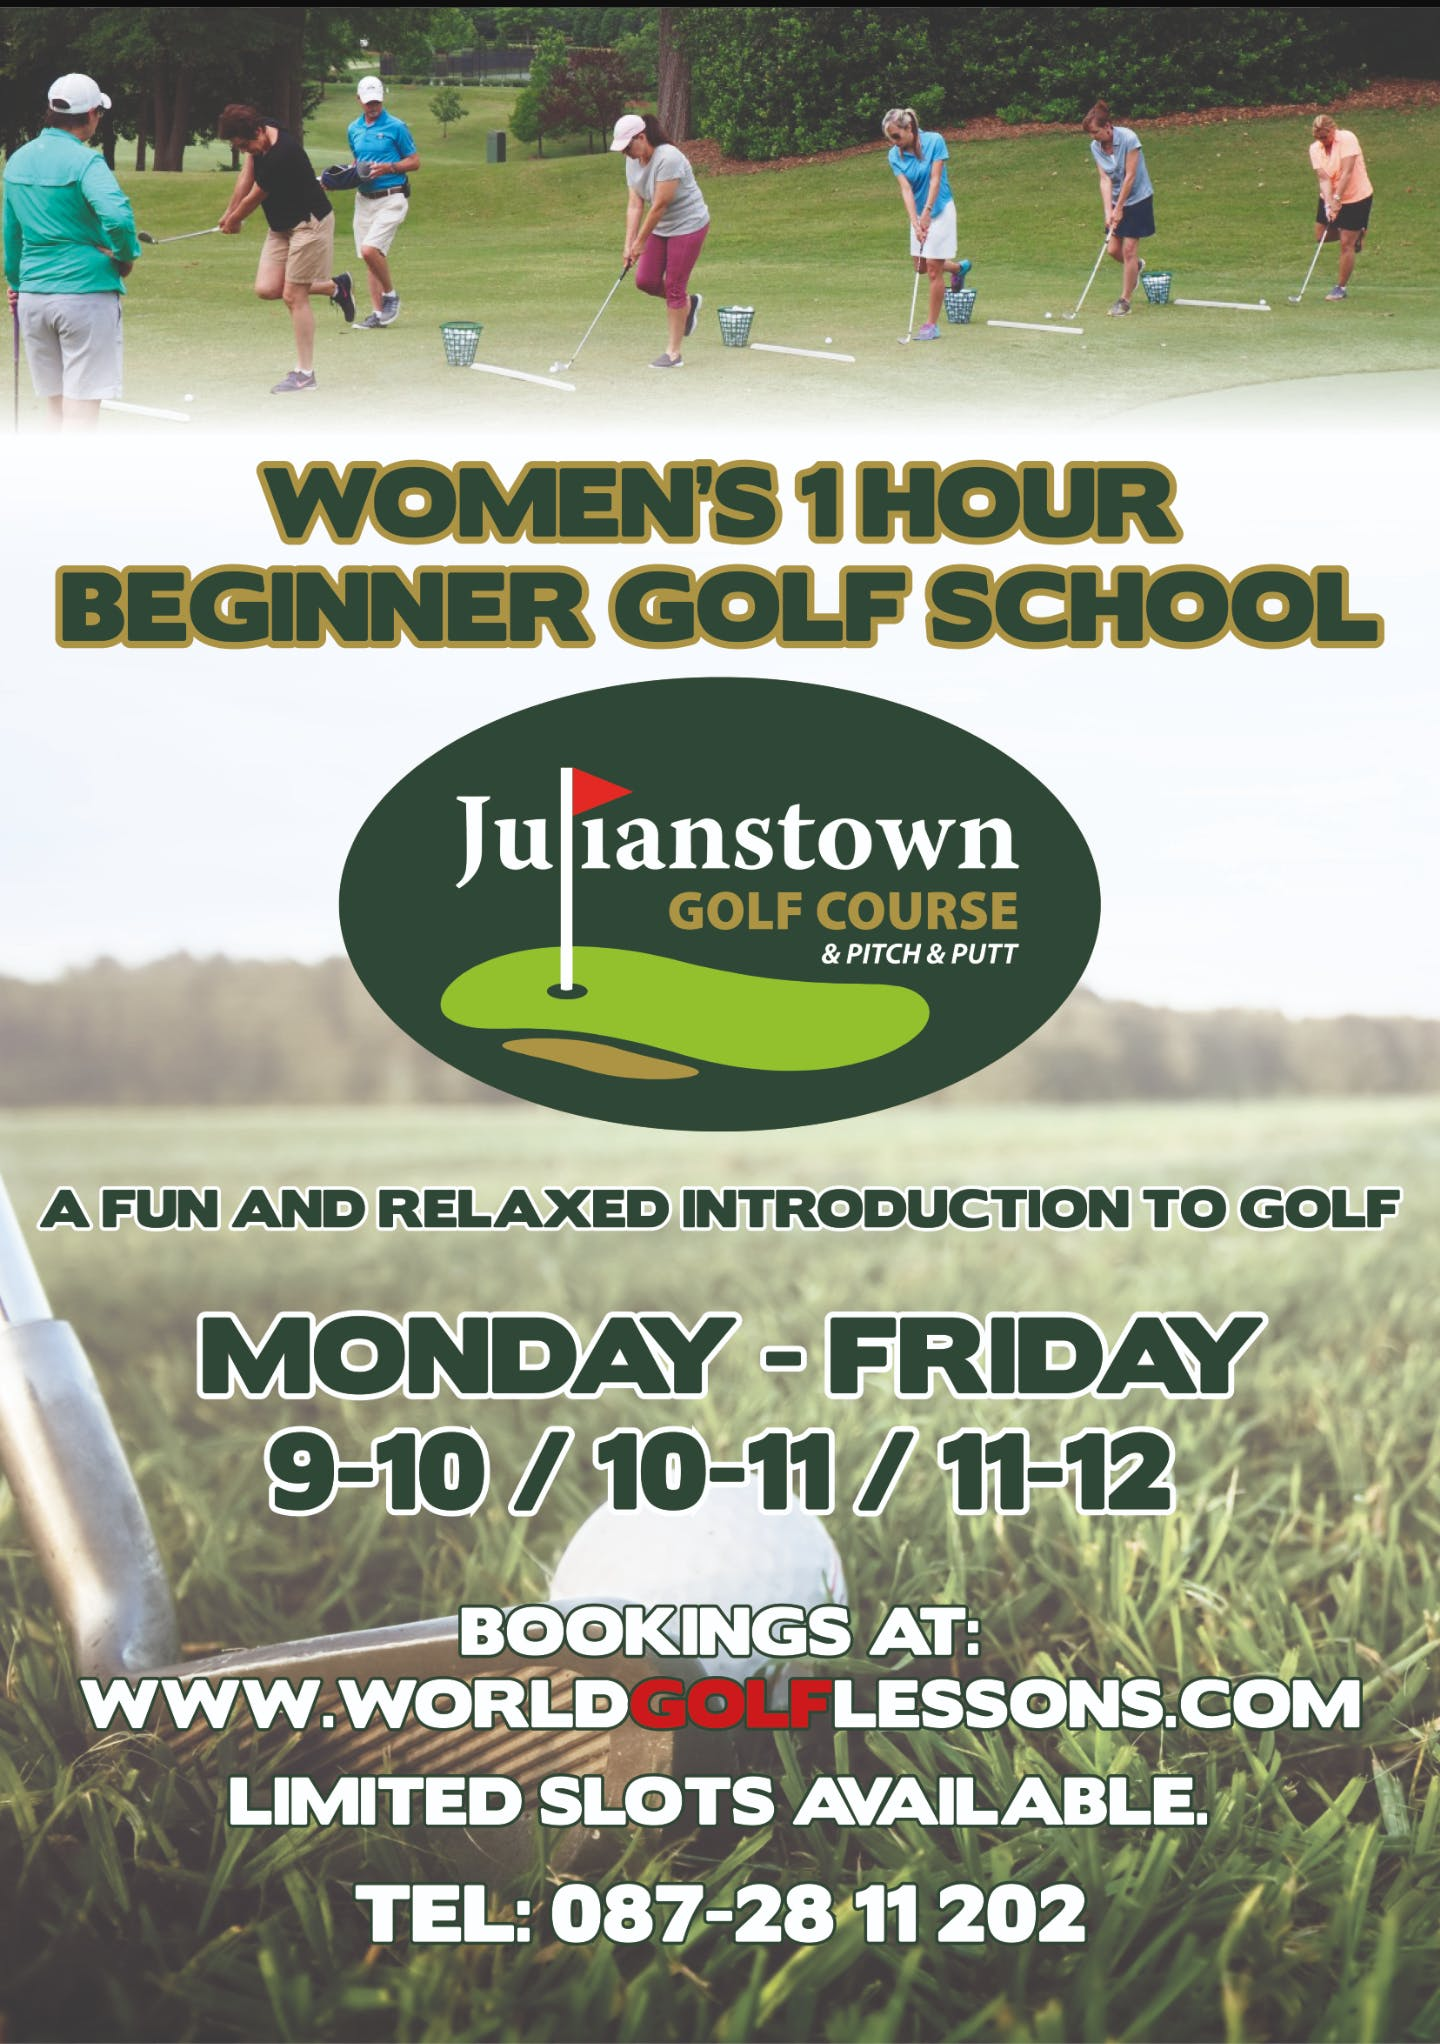 WOMANS 1 HOUR BEGGINERS GOLF SCHOOL